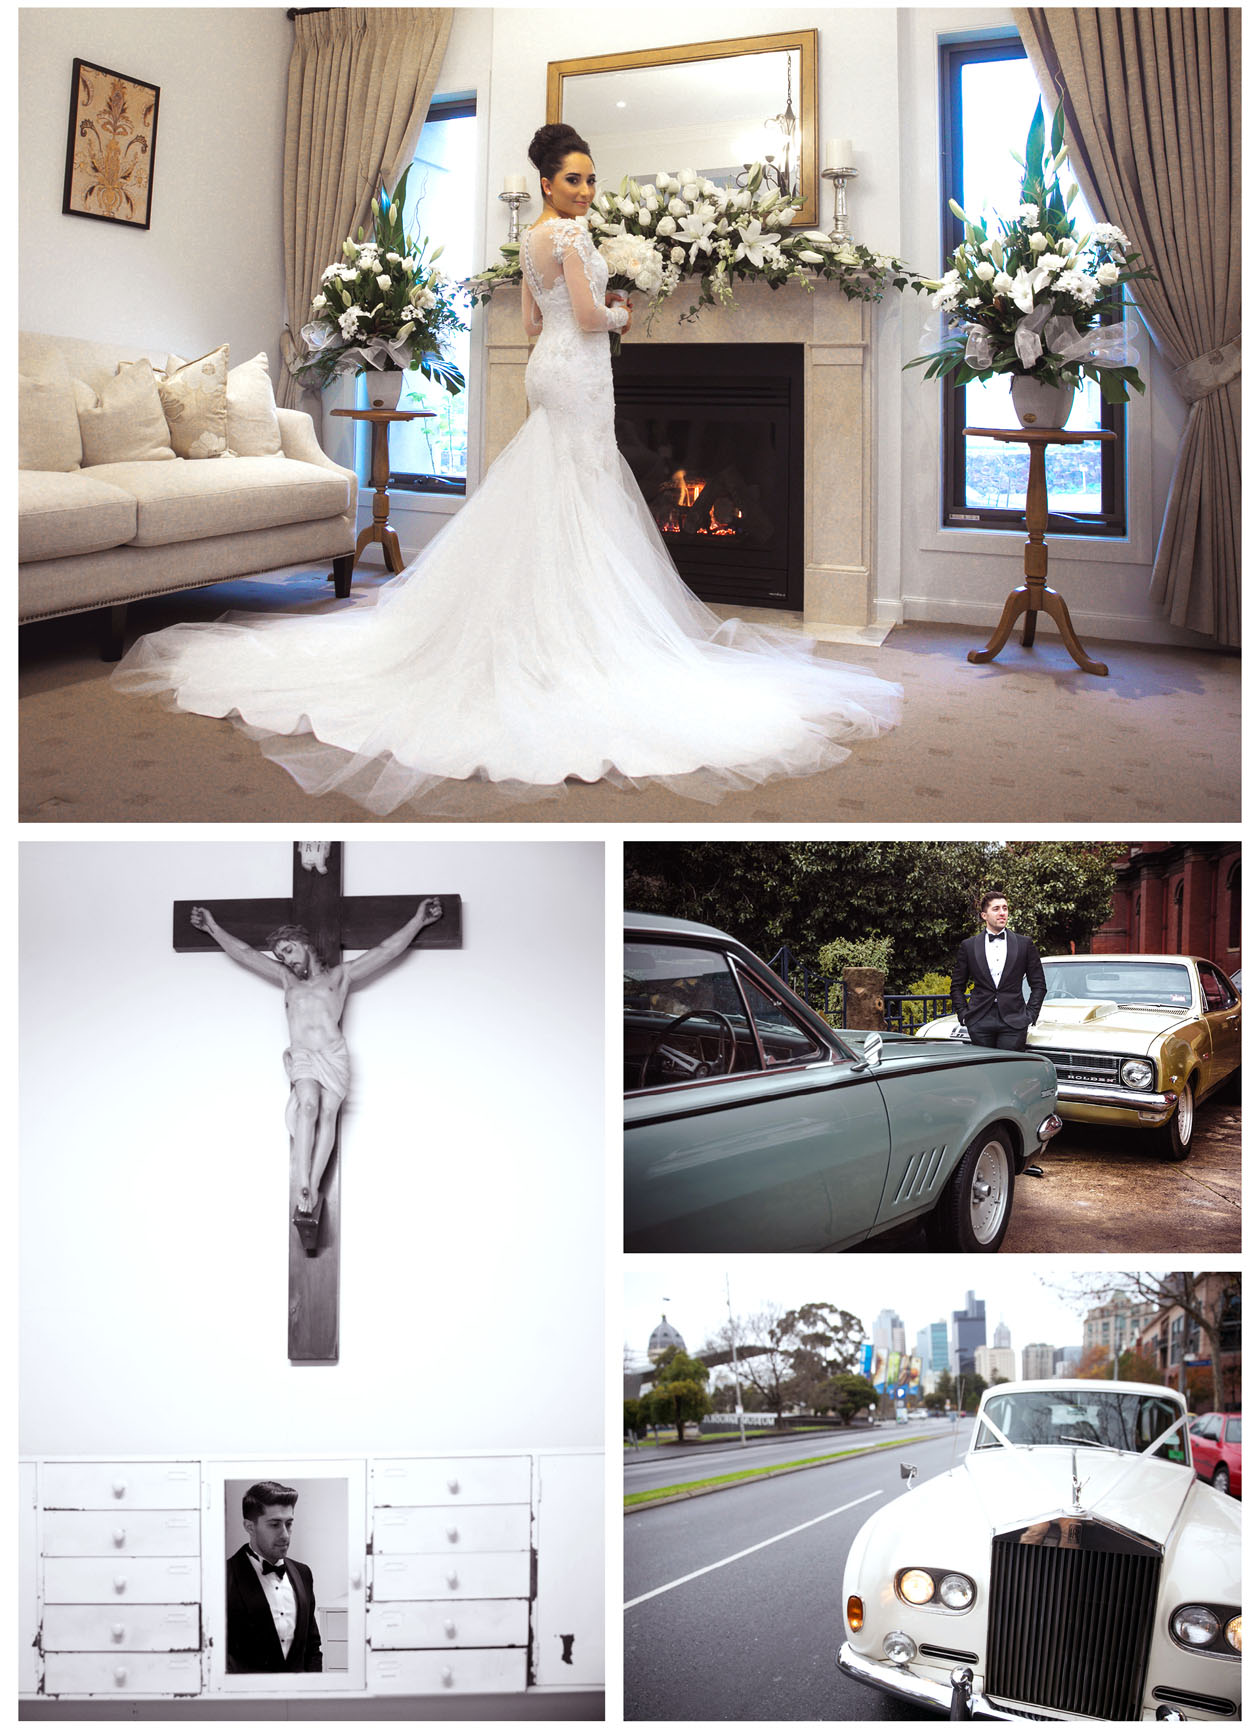 The groom take photos with old classic cars in front of church and his wife stand by him